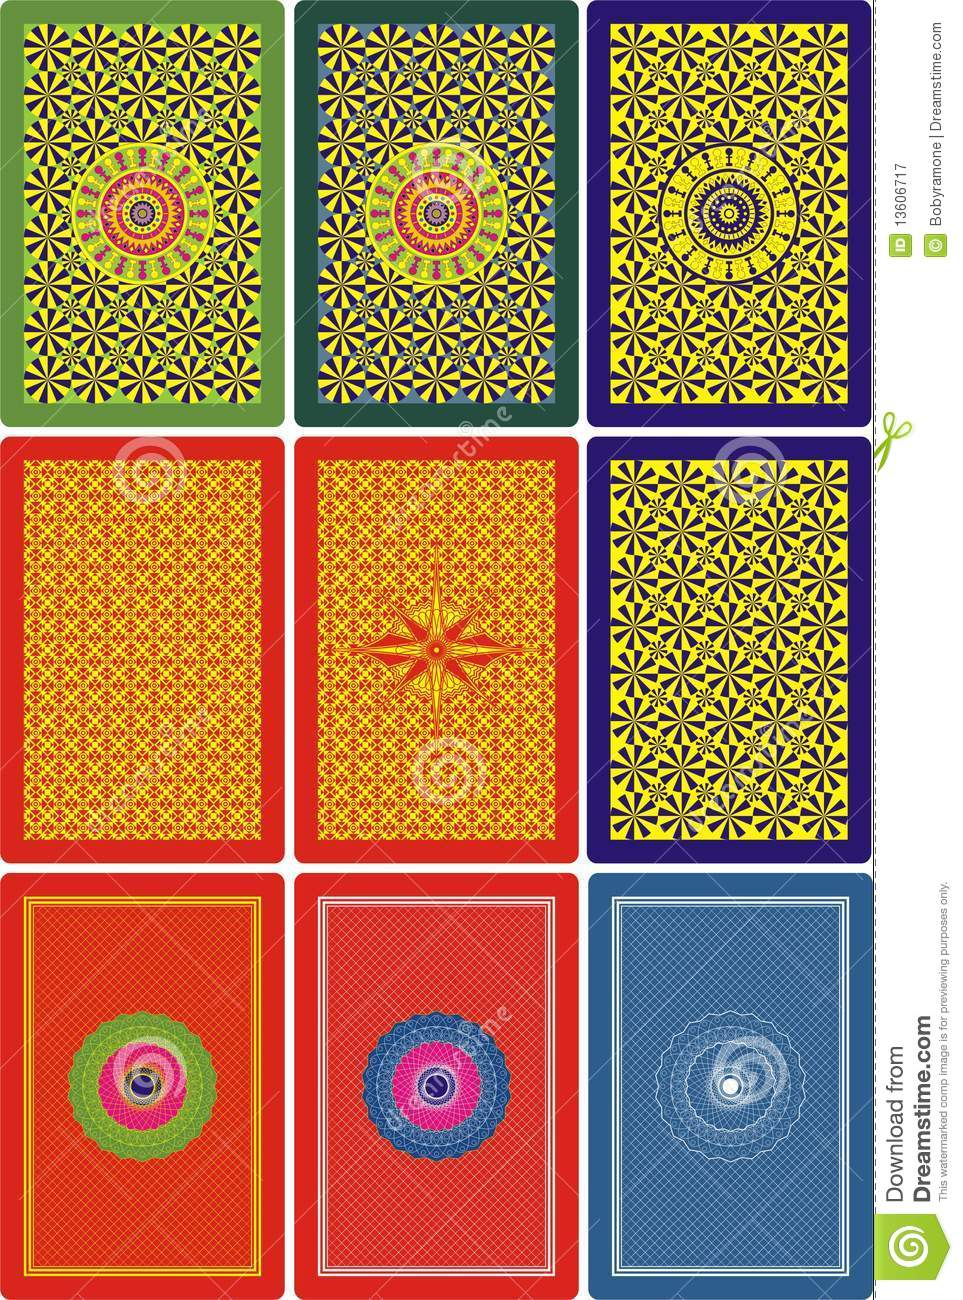 Playing cards back side 60 x 90 mm